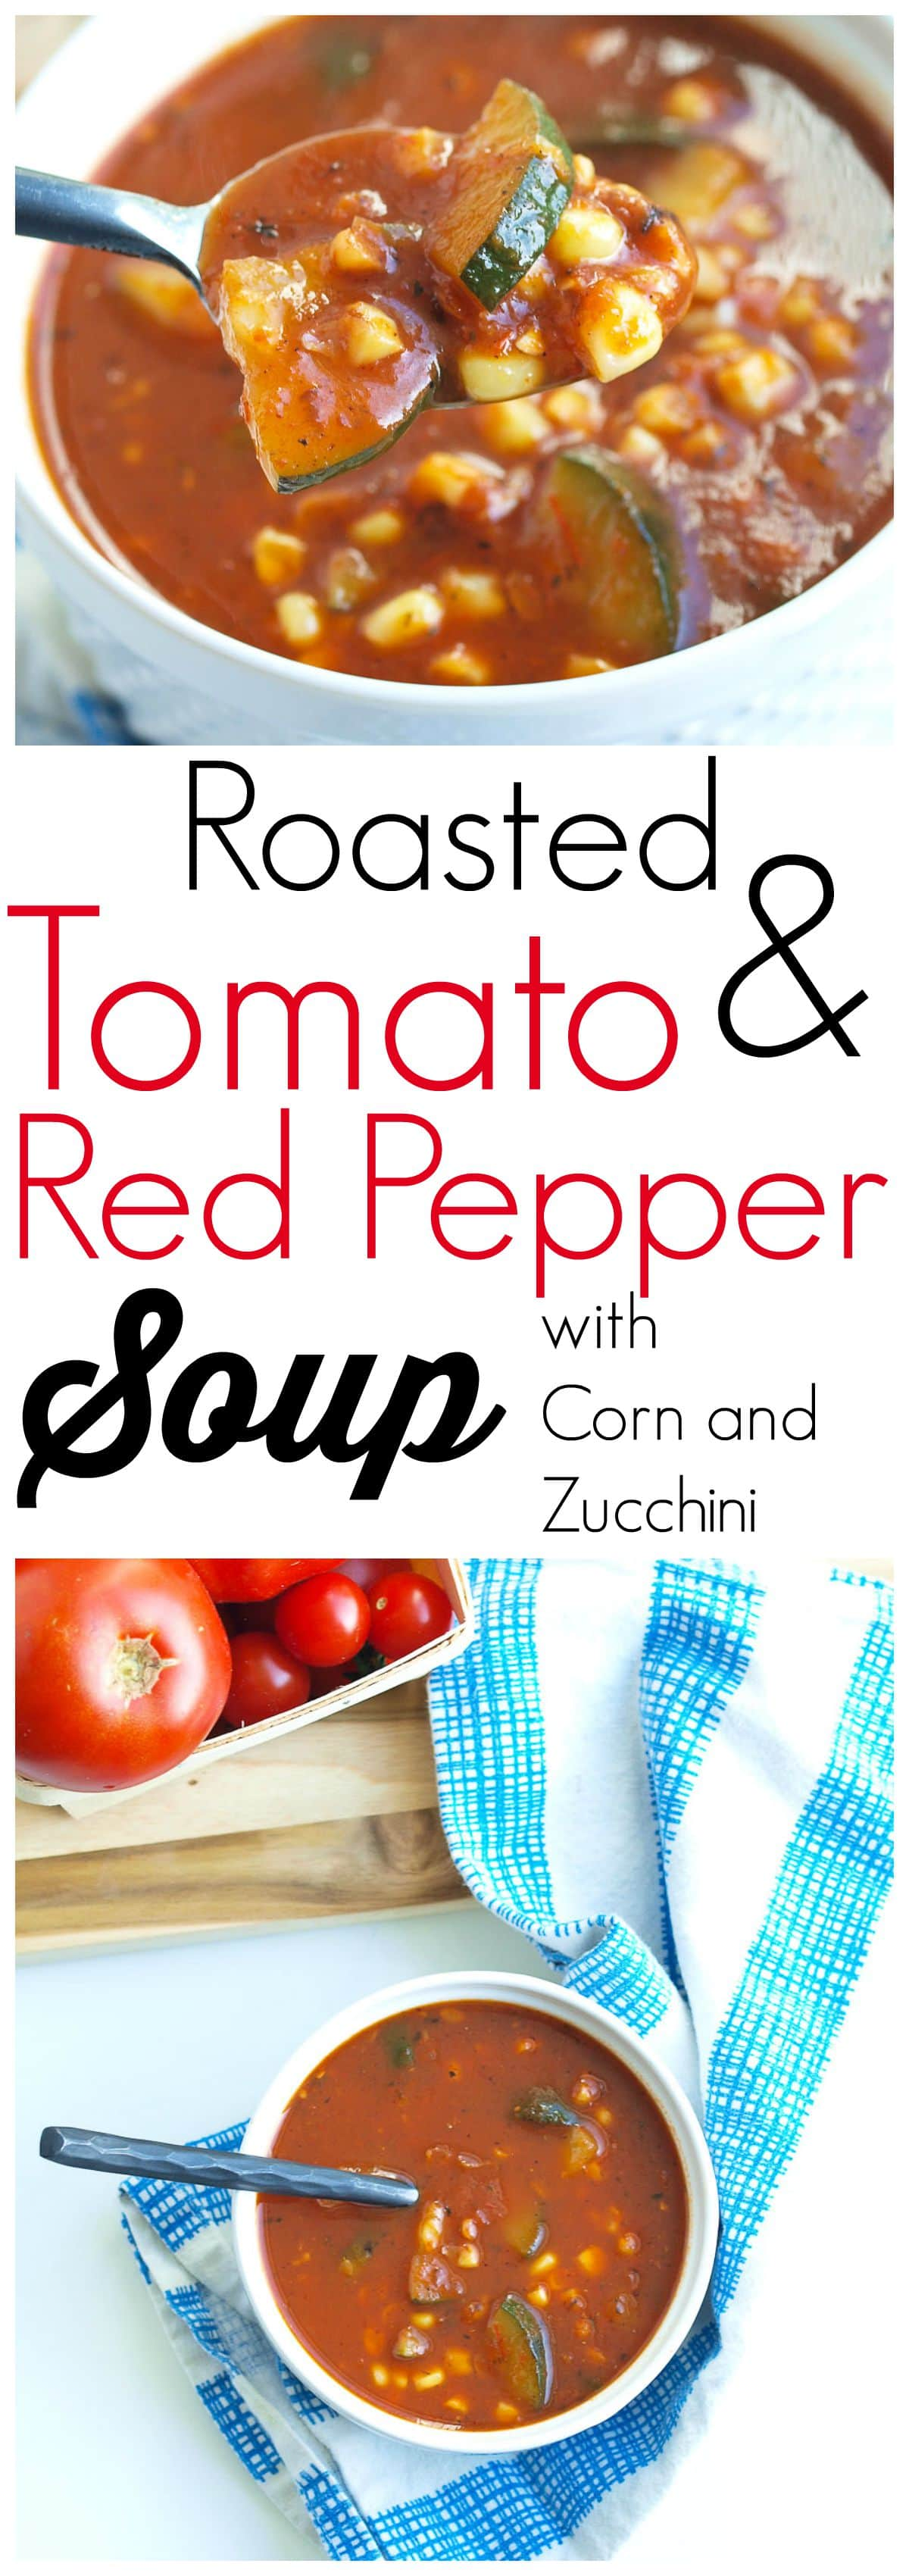 This Roasted Tomato and Red Pepper Soup with Zucchini and Corn soup is beyond incredible. You will not be disappointed with this recipe! A healthy soup recipe filled with summer's best produce.